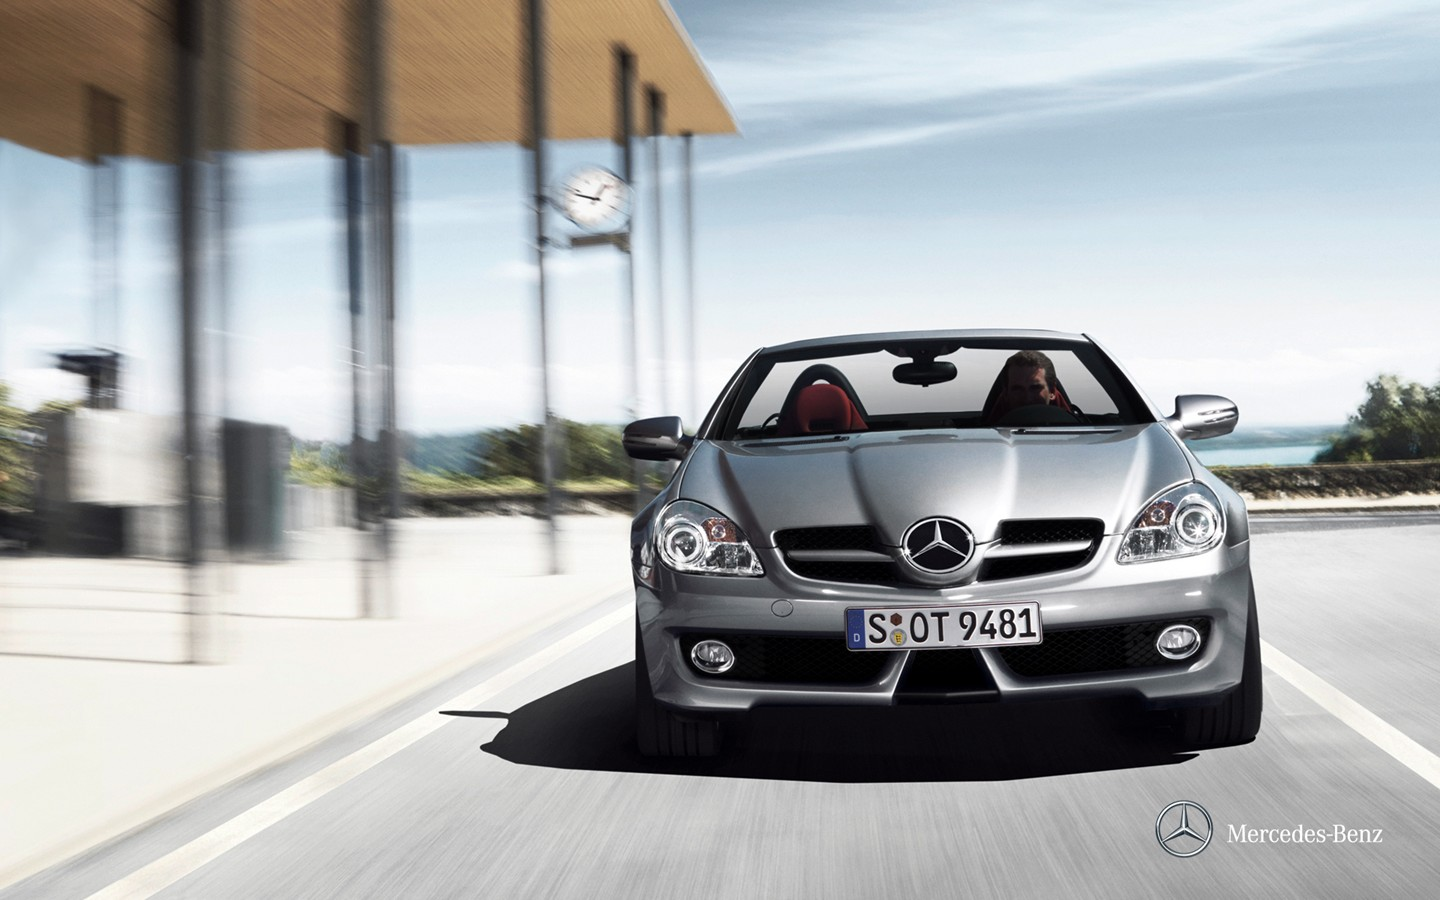 Mercedes-Benz SLK roadster 32028